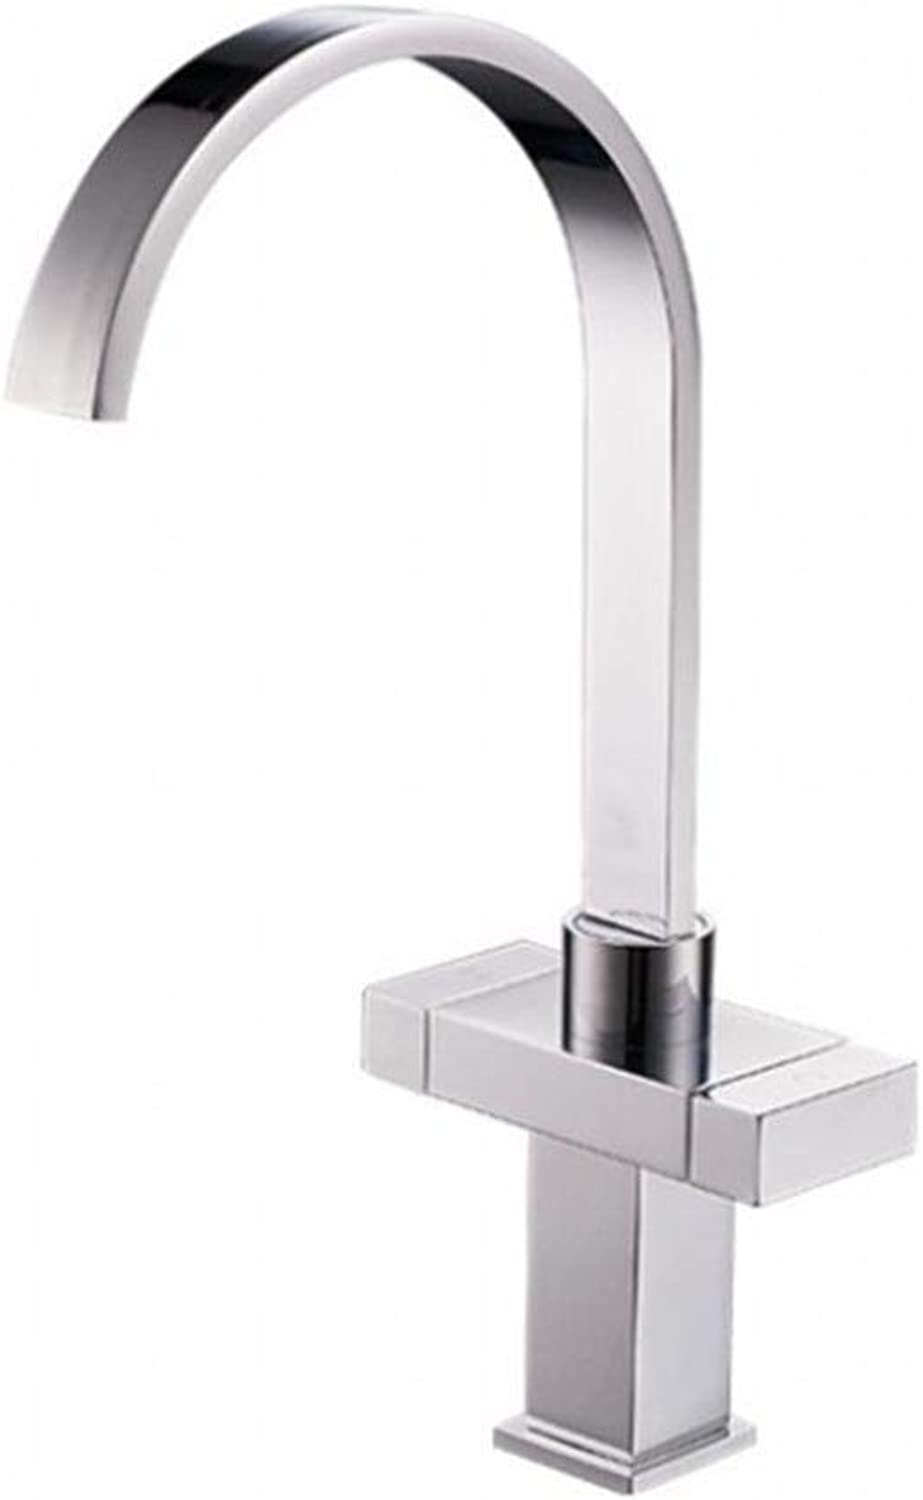 GYLFDC Brass Lead-Free Faucet, Square Curved Kitchen Faucet, 306 Stainless Steel, Brushed and Polished, Hot and Cold Mixing